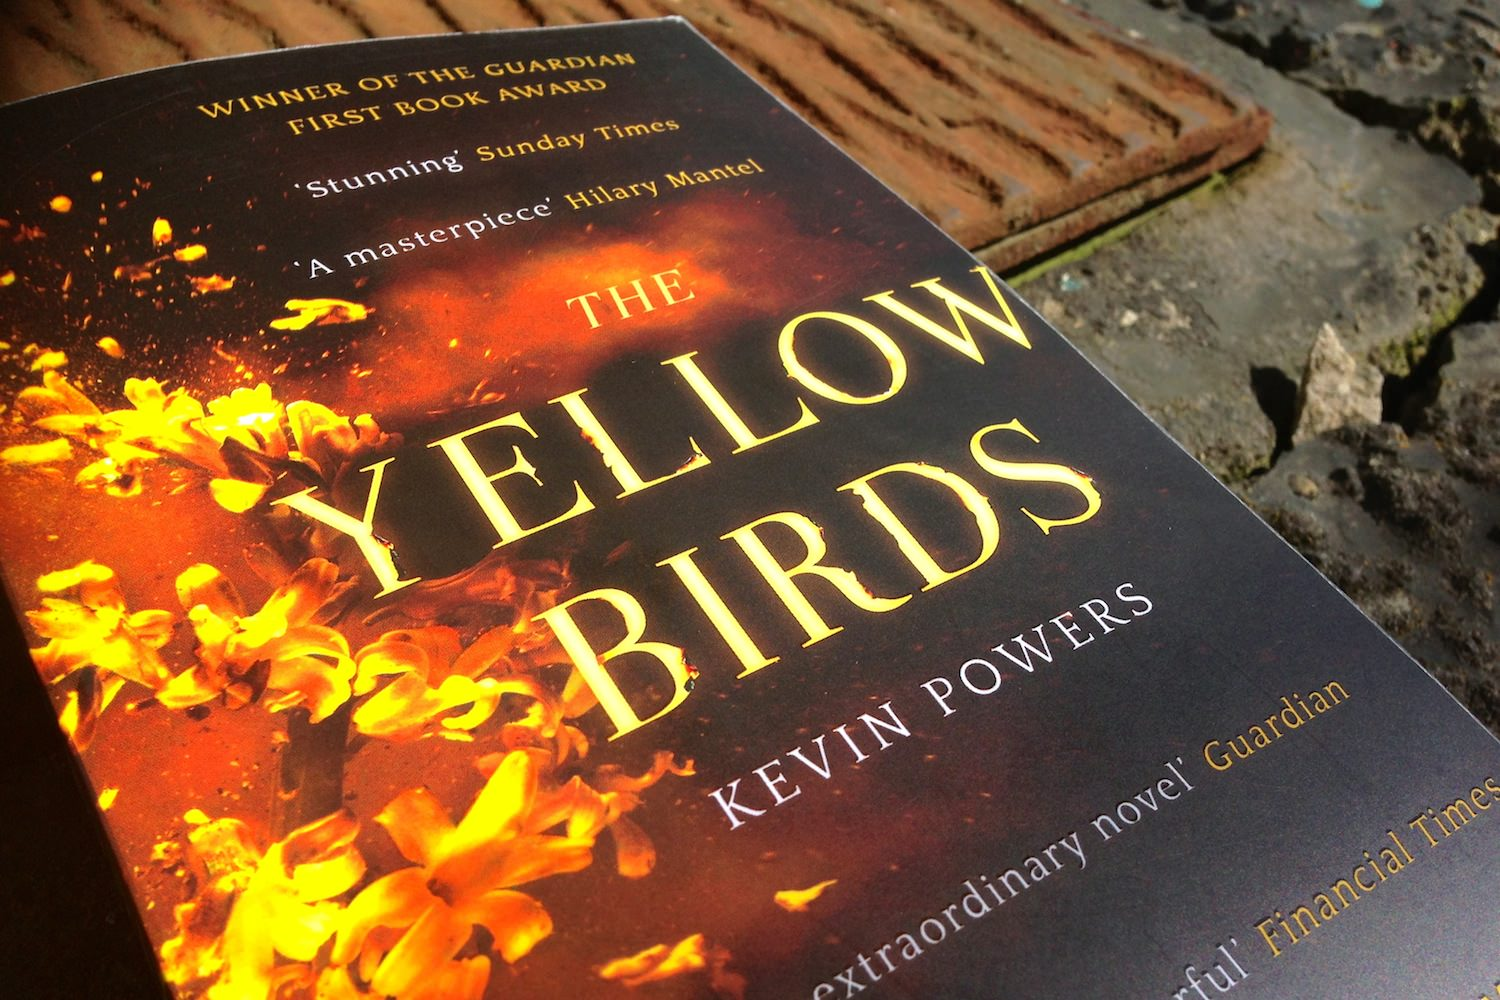 a review of the book the yellow birds by kevin powers Alan cheuse reviews kevin powers' first novel the yellow birds, which is based on his real life experience serving in iraq melissa block, host: writer kevin powers enlisted in the army at age 17 and served in iraq in 2004 and 2005.